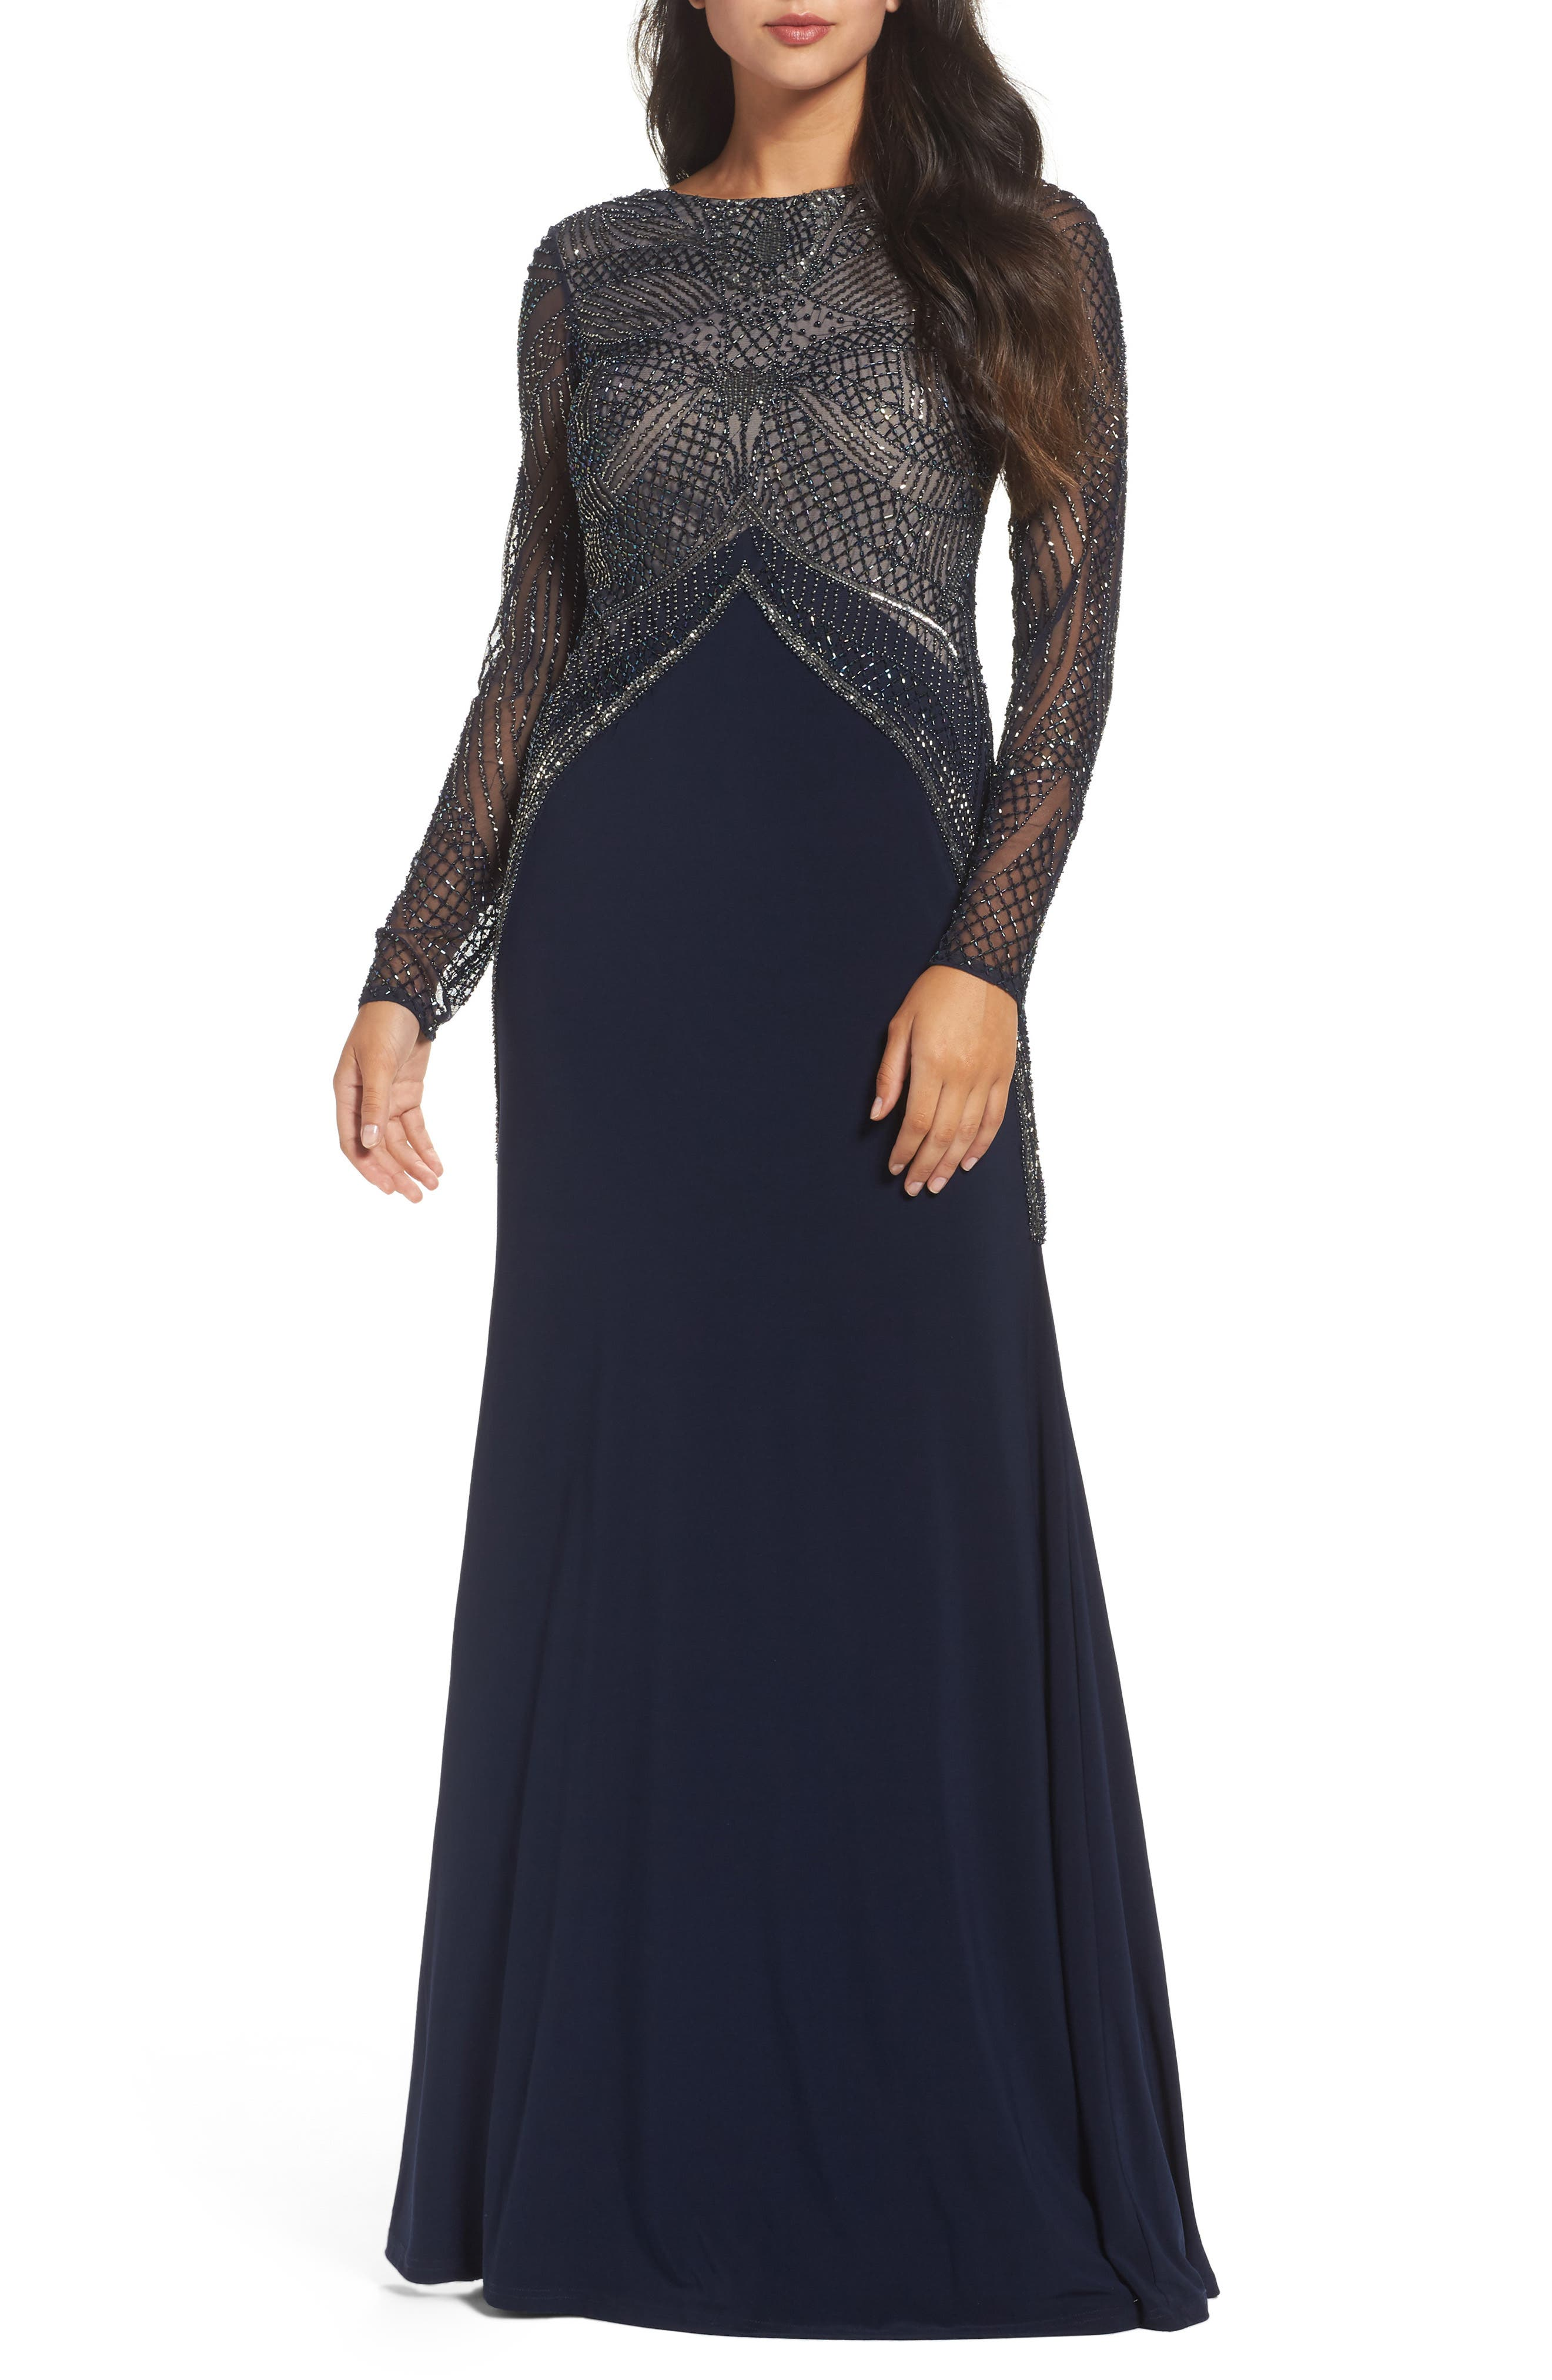 Alternate Image 1 Selected - Adrianna Papell Beaded Long Sleeve Gown